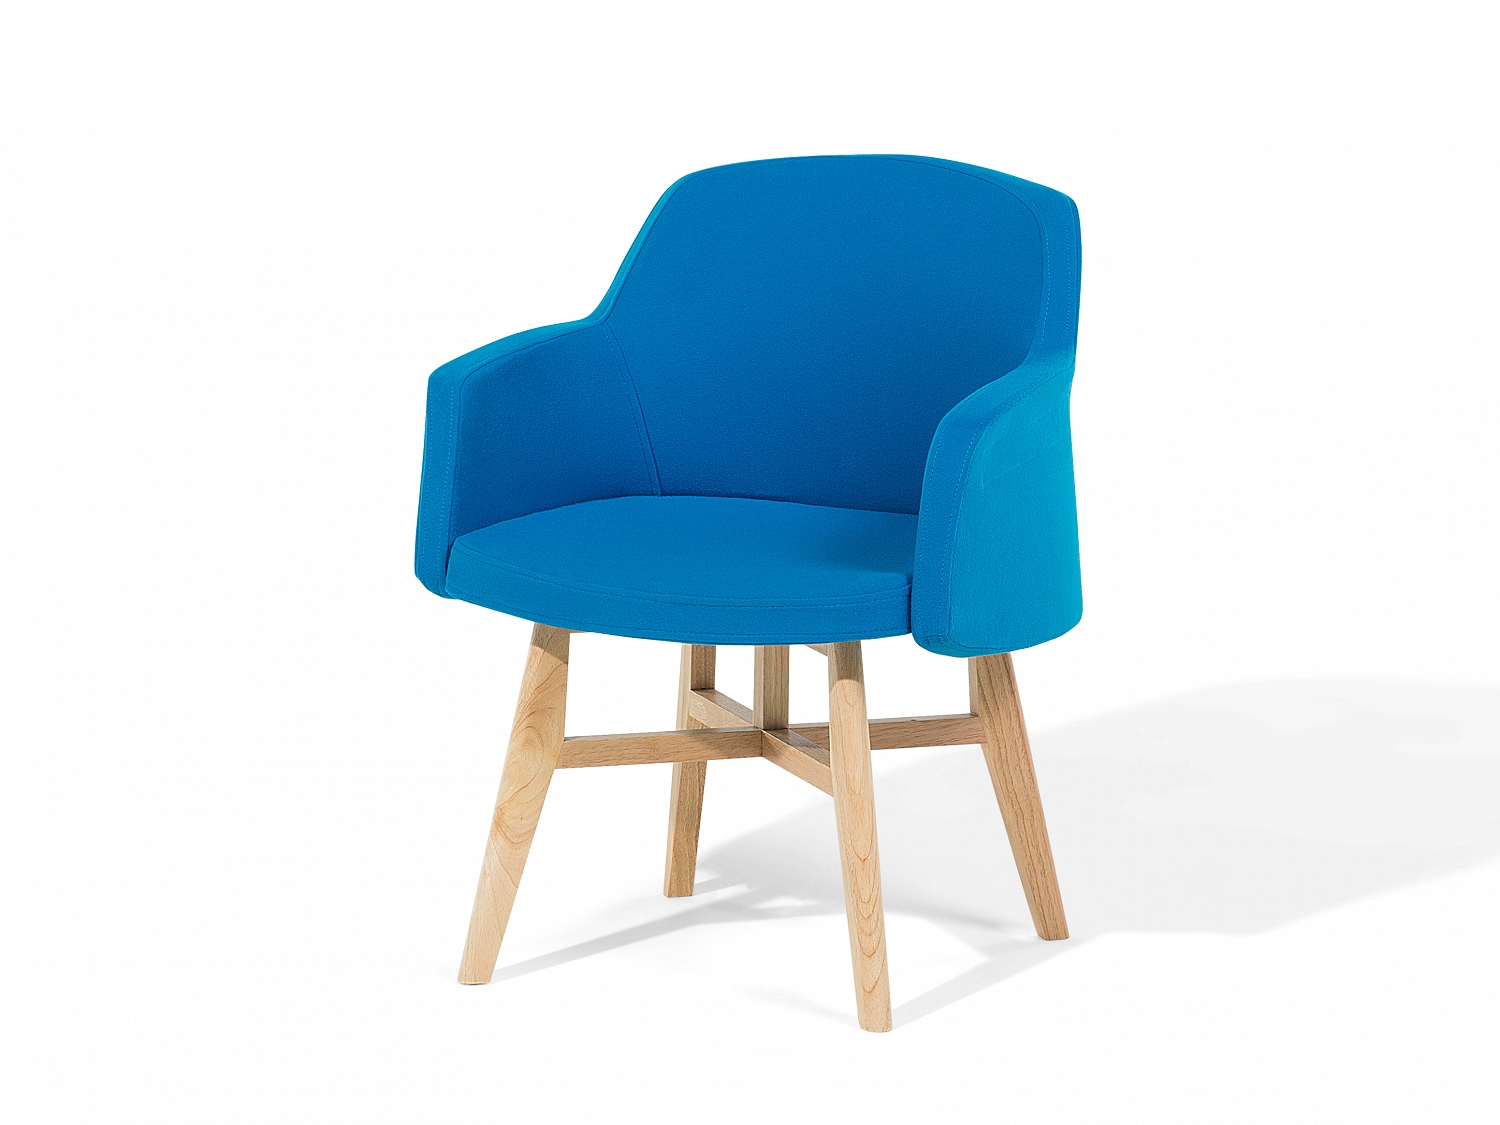 Design Sessel Blau Sessel Blau Hocker Sessel Homeandgarden Sessel In Blau